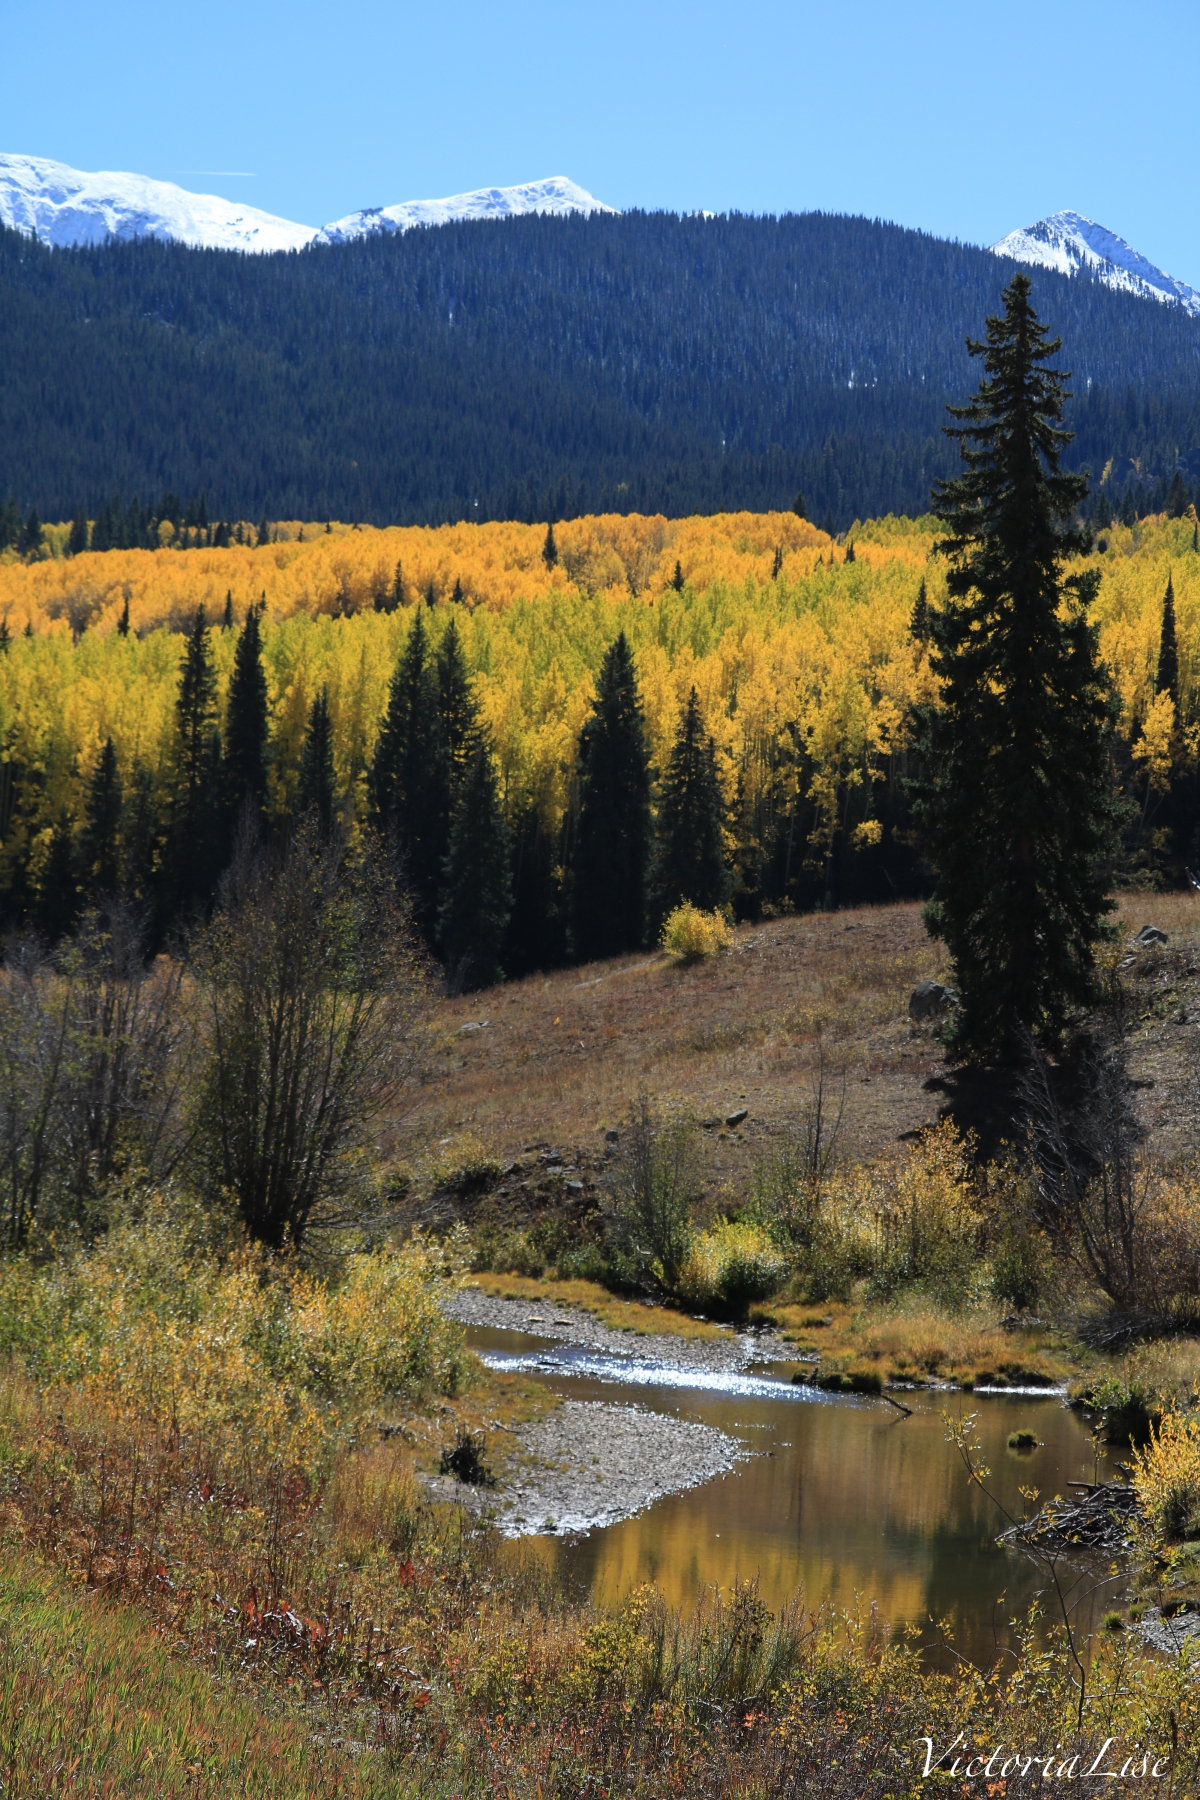 The river runs through. Aspens during peak of fall. Victoria Lise